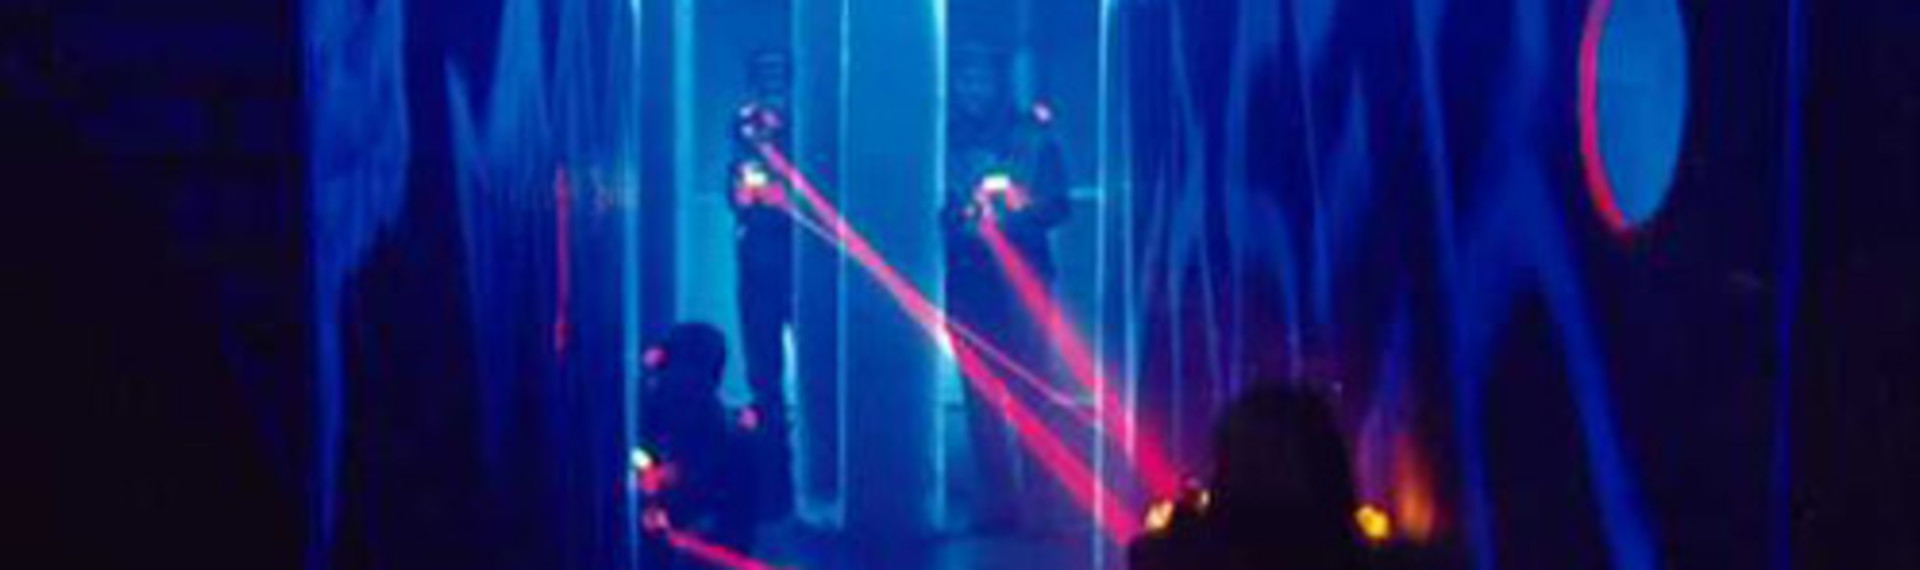 Cologne Laser game Indoor, 3 parties image